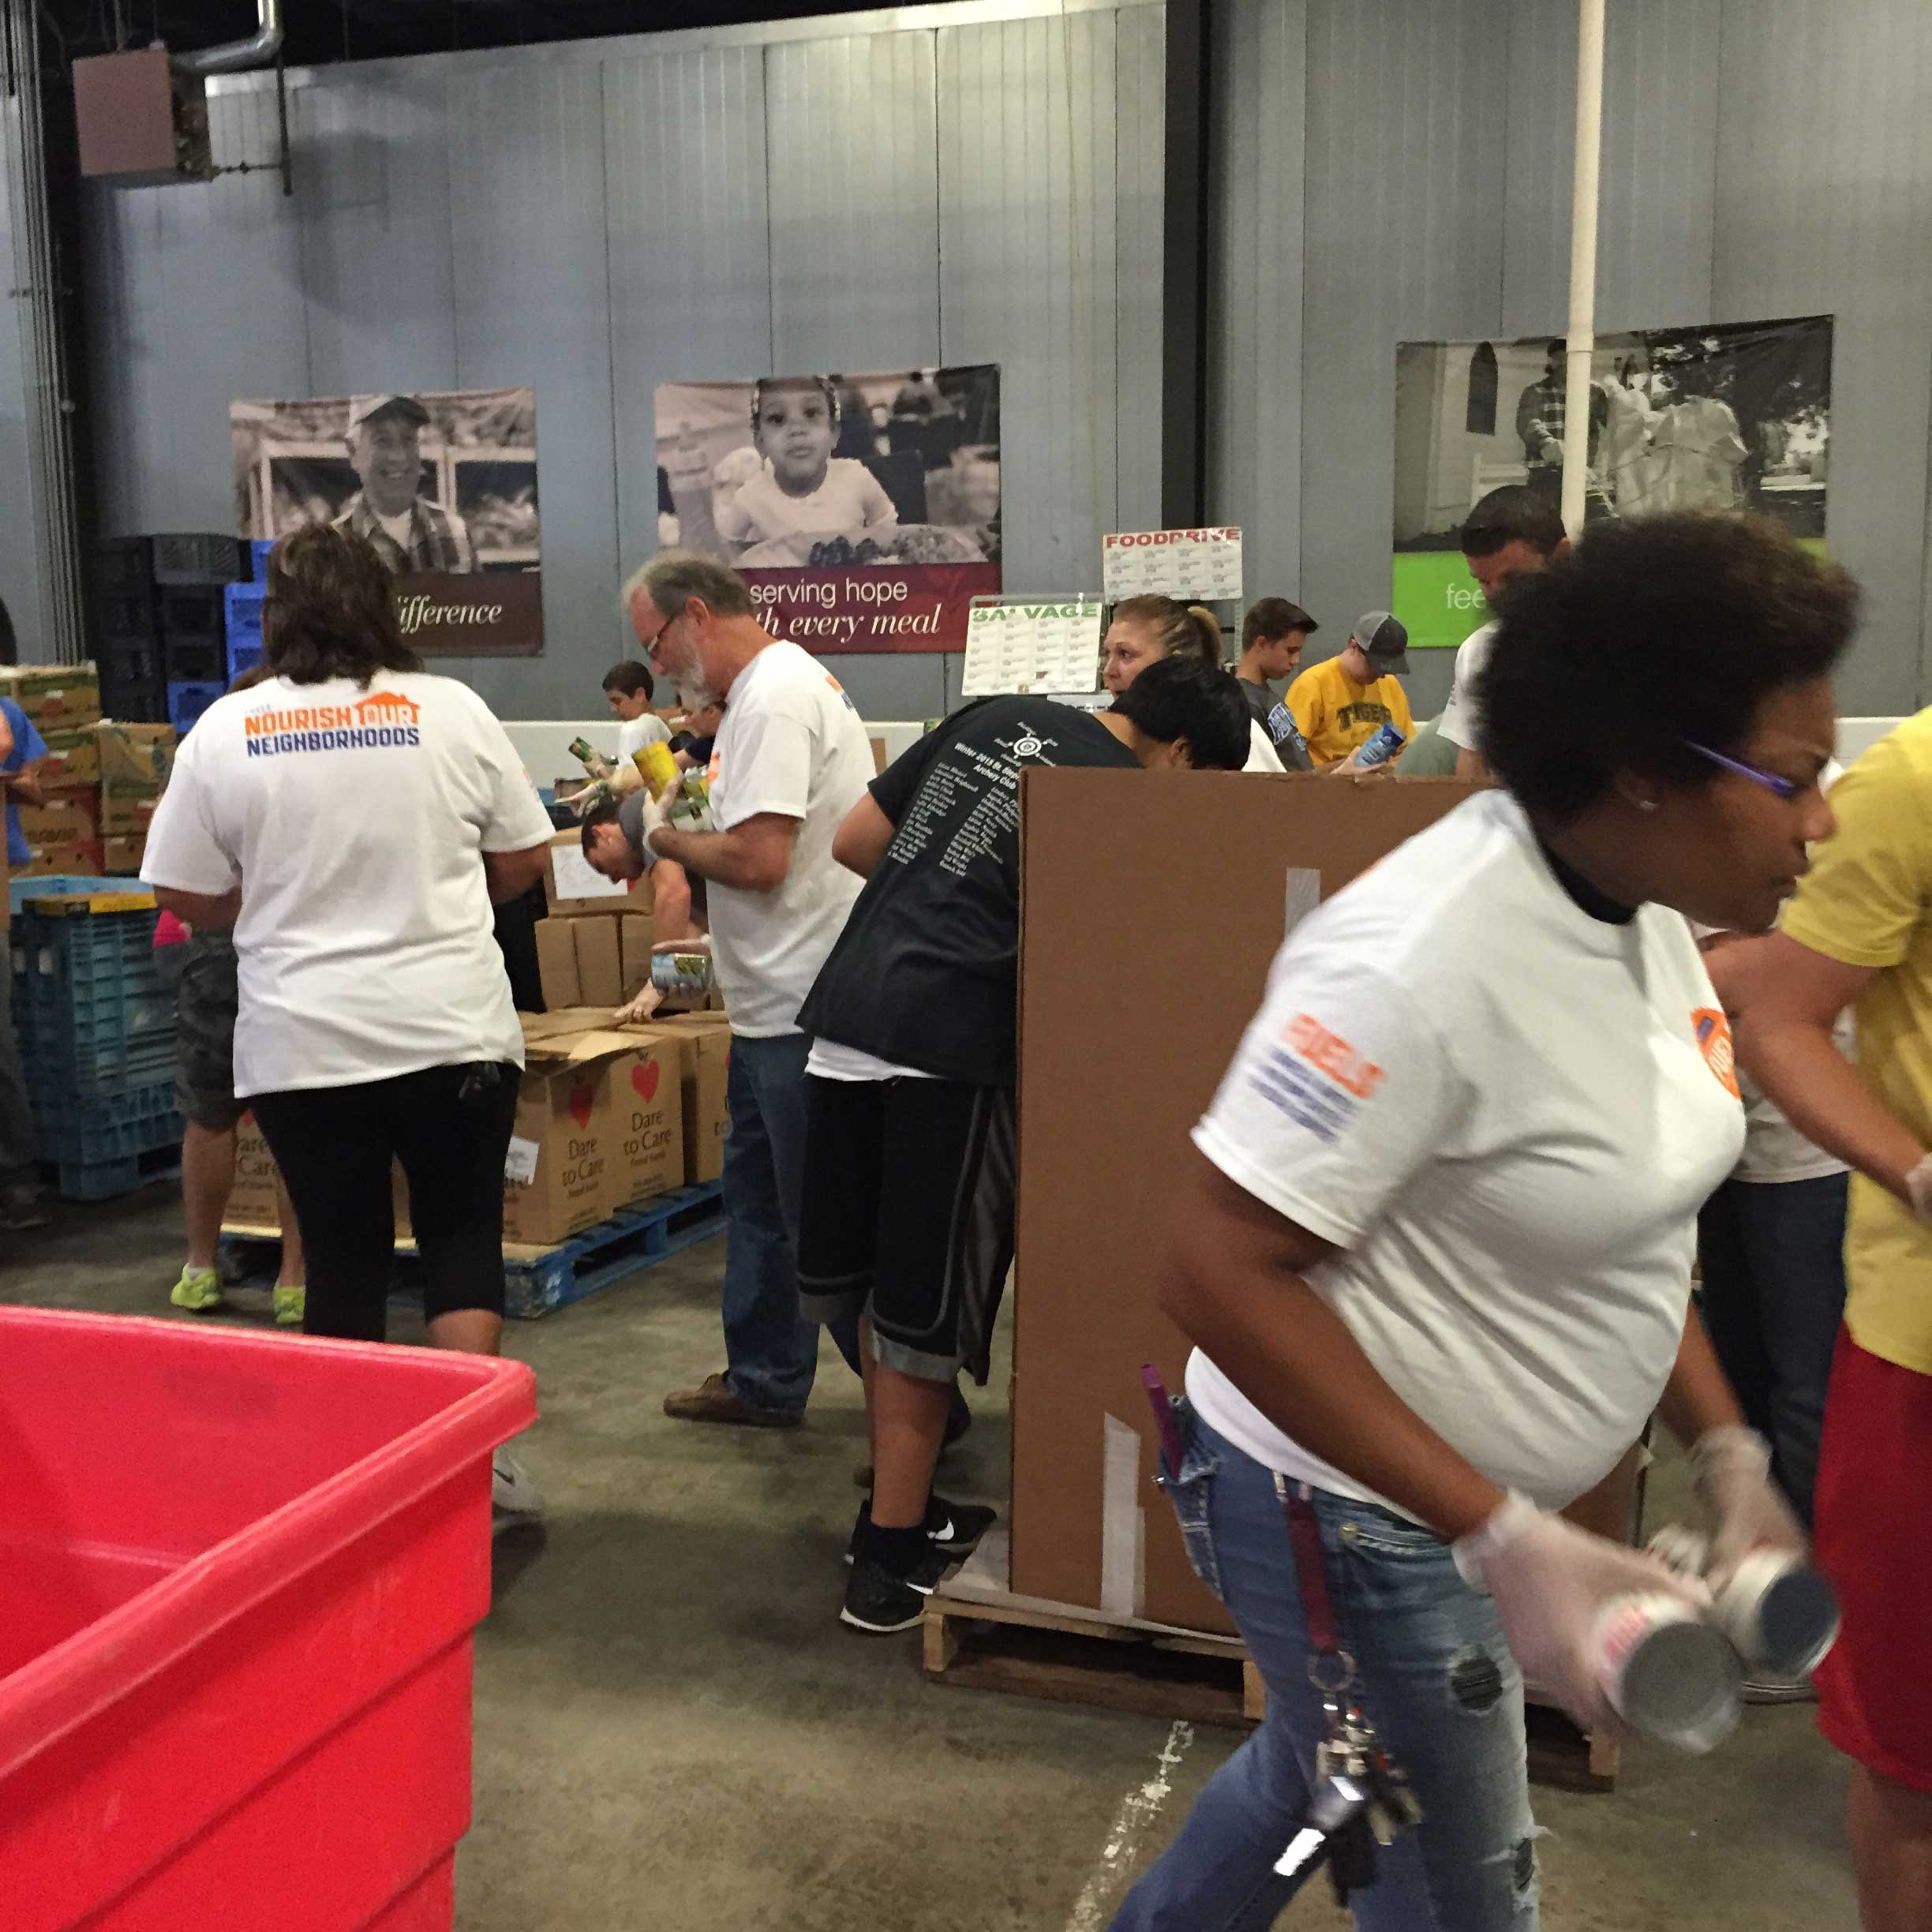 Faurecians, like the FECT employees in Louisville, Kentucky, give hundreds of hours of their own time, volunteering to pack food, sort boxes and cans, and serve meals to families in their hometowns.